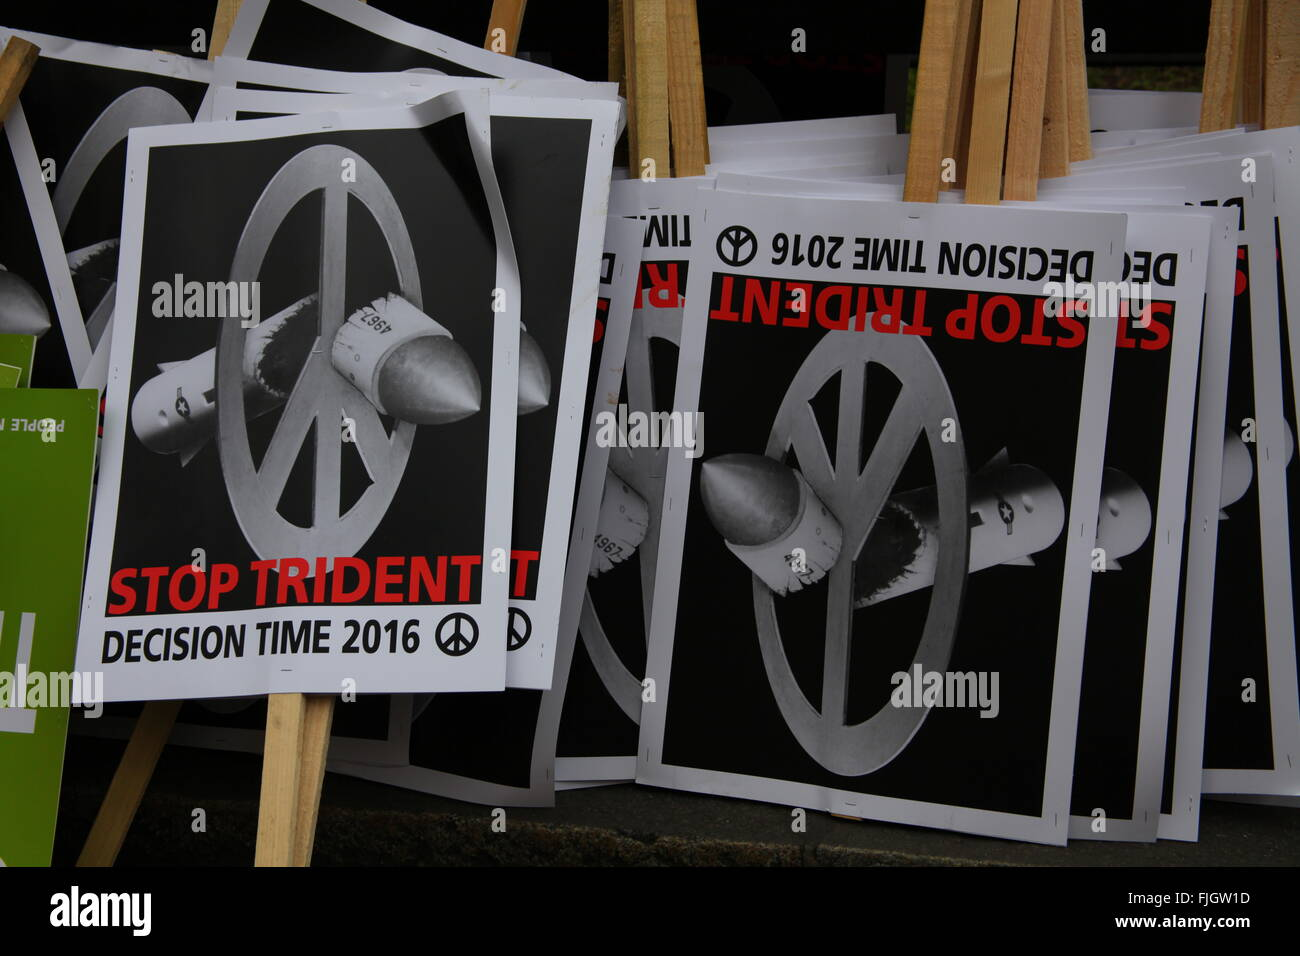 London, UK. 27th February, 2016. Placards for the CND Stop Trident Renewal demonstration. - Stock Image